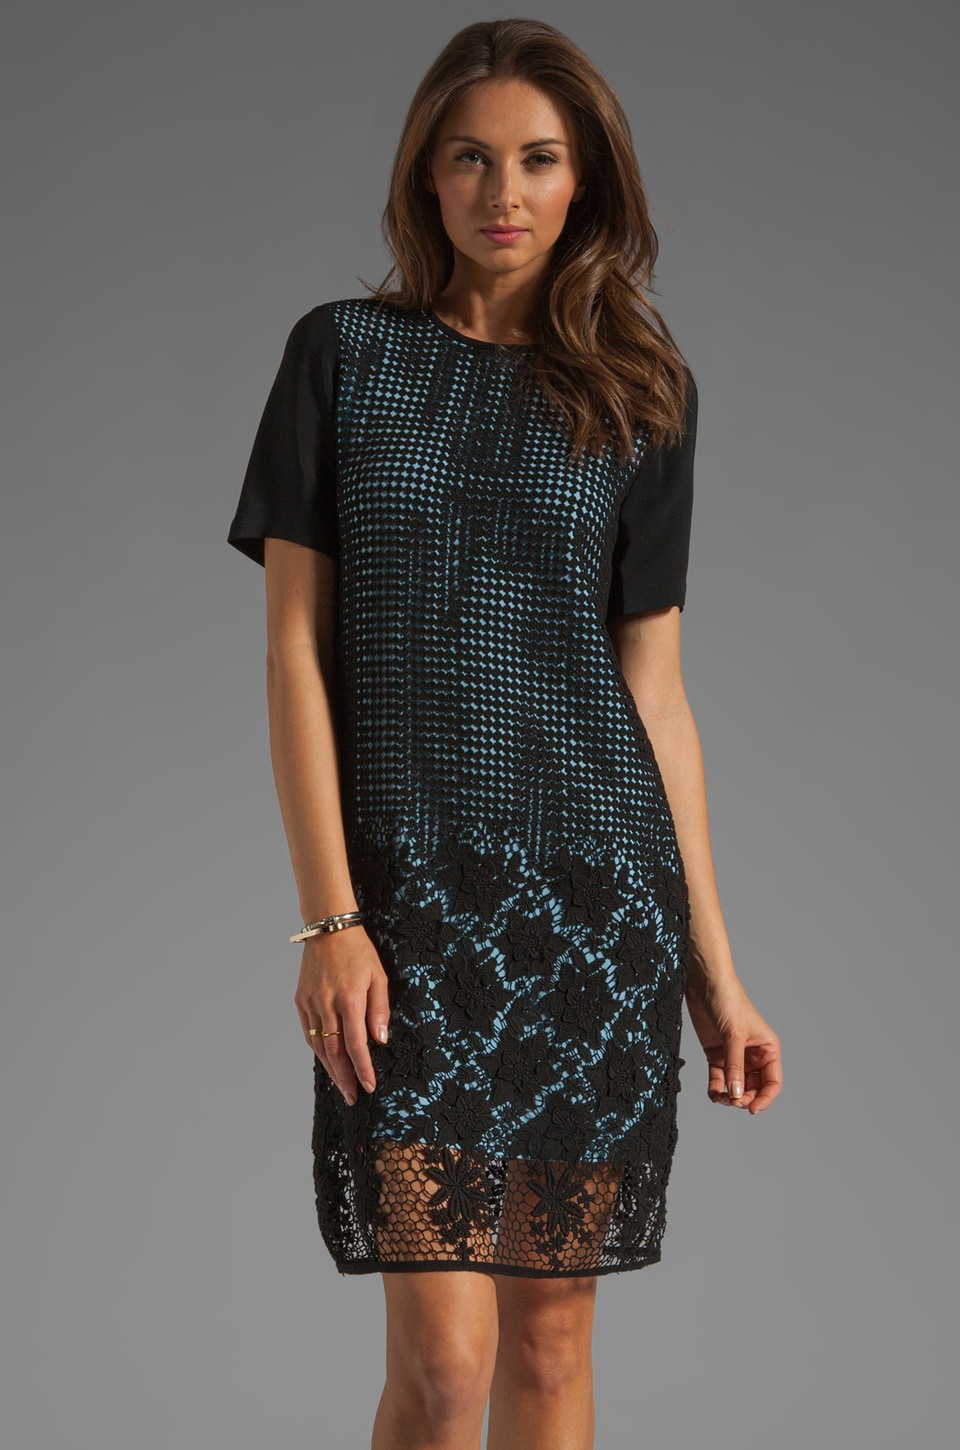 Tibi Basia Lace Dress in Black/Baby Blue Multi